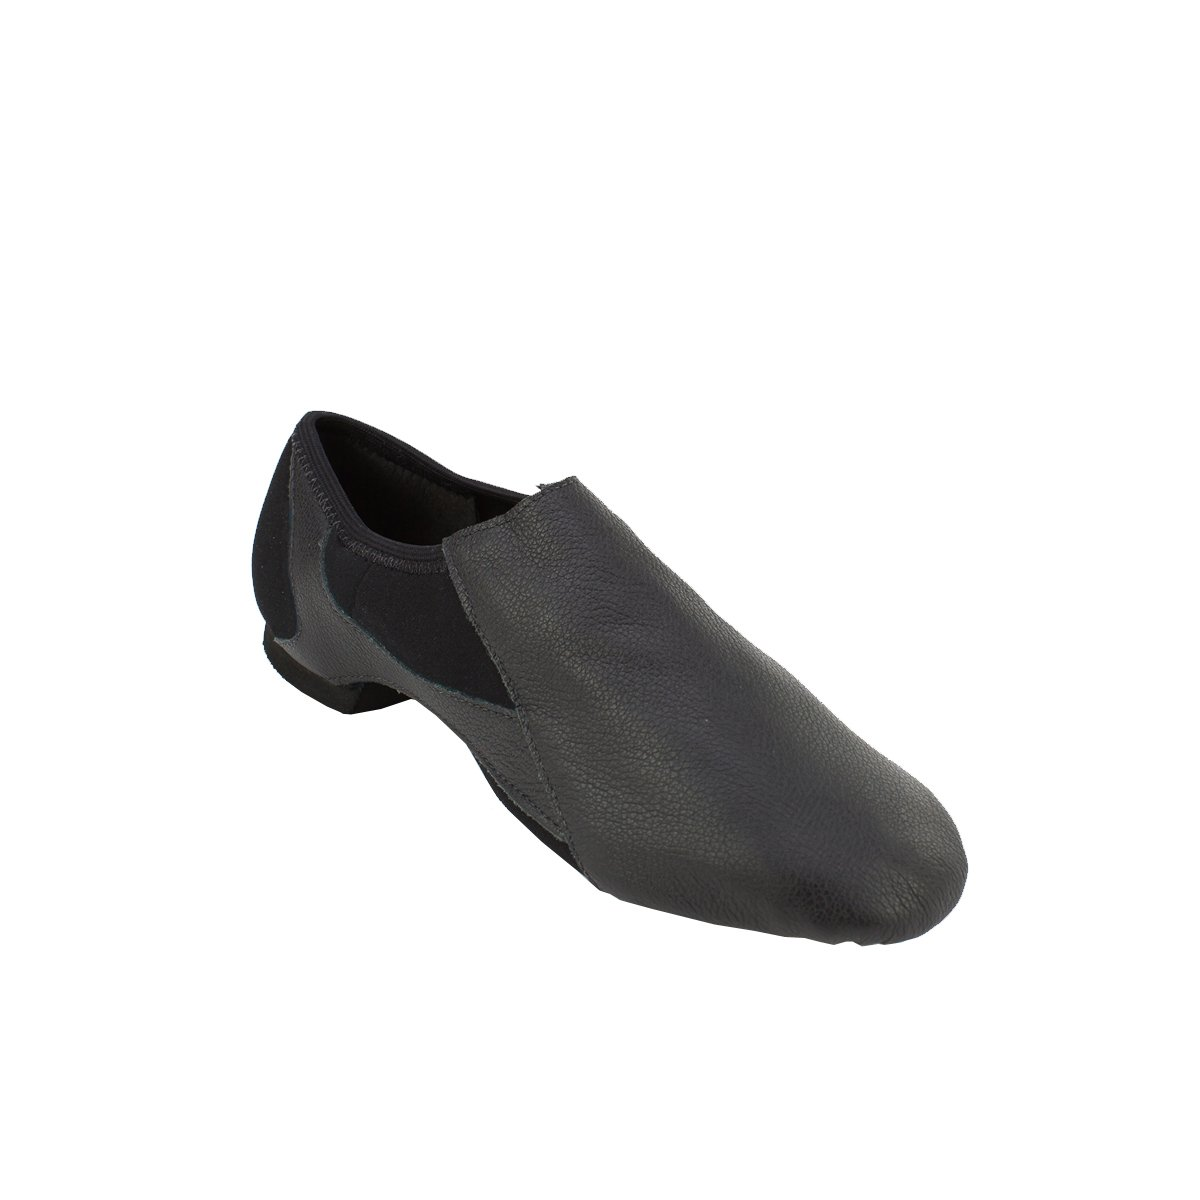 Sodanca Jz-78 Adult Jillian Slip On Jazz Shoe